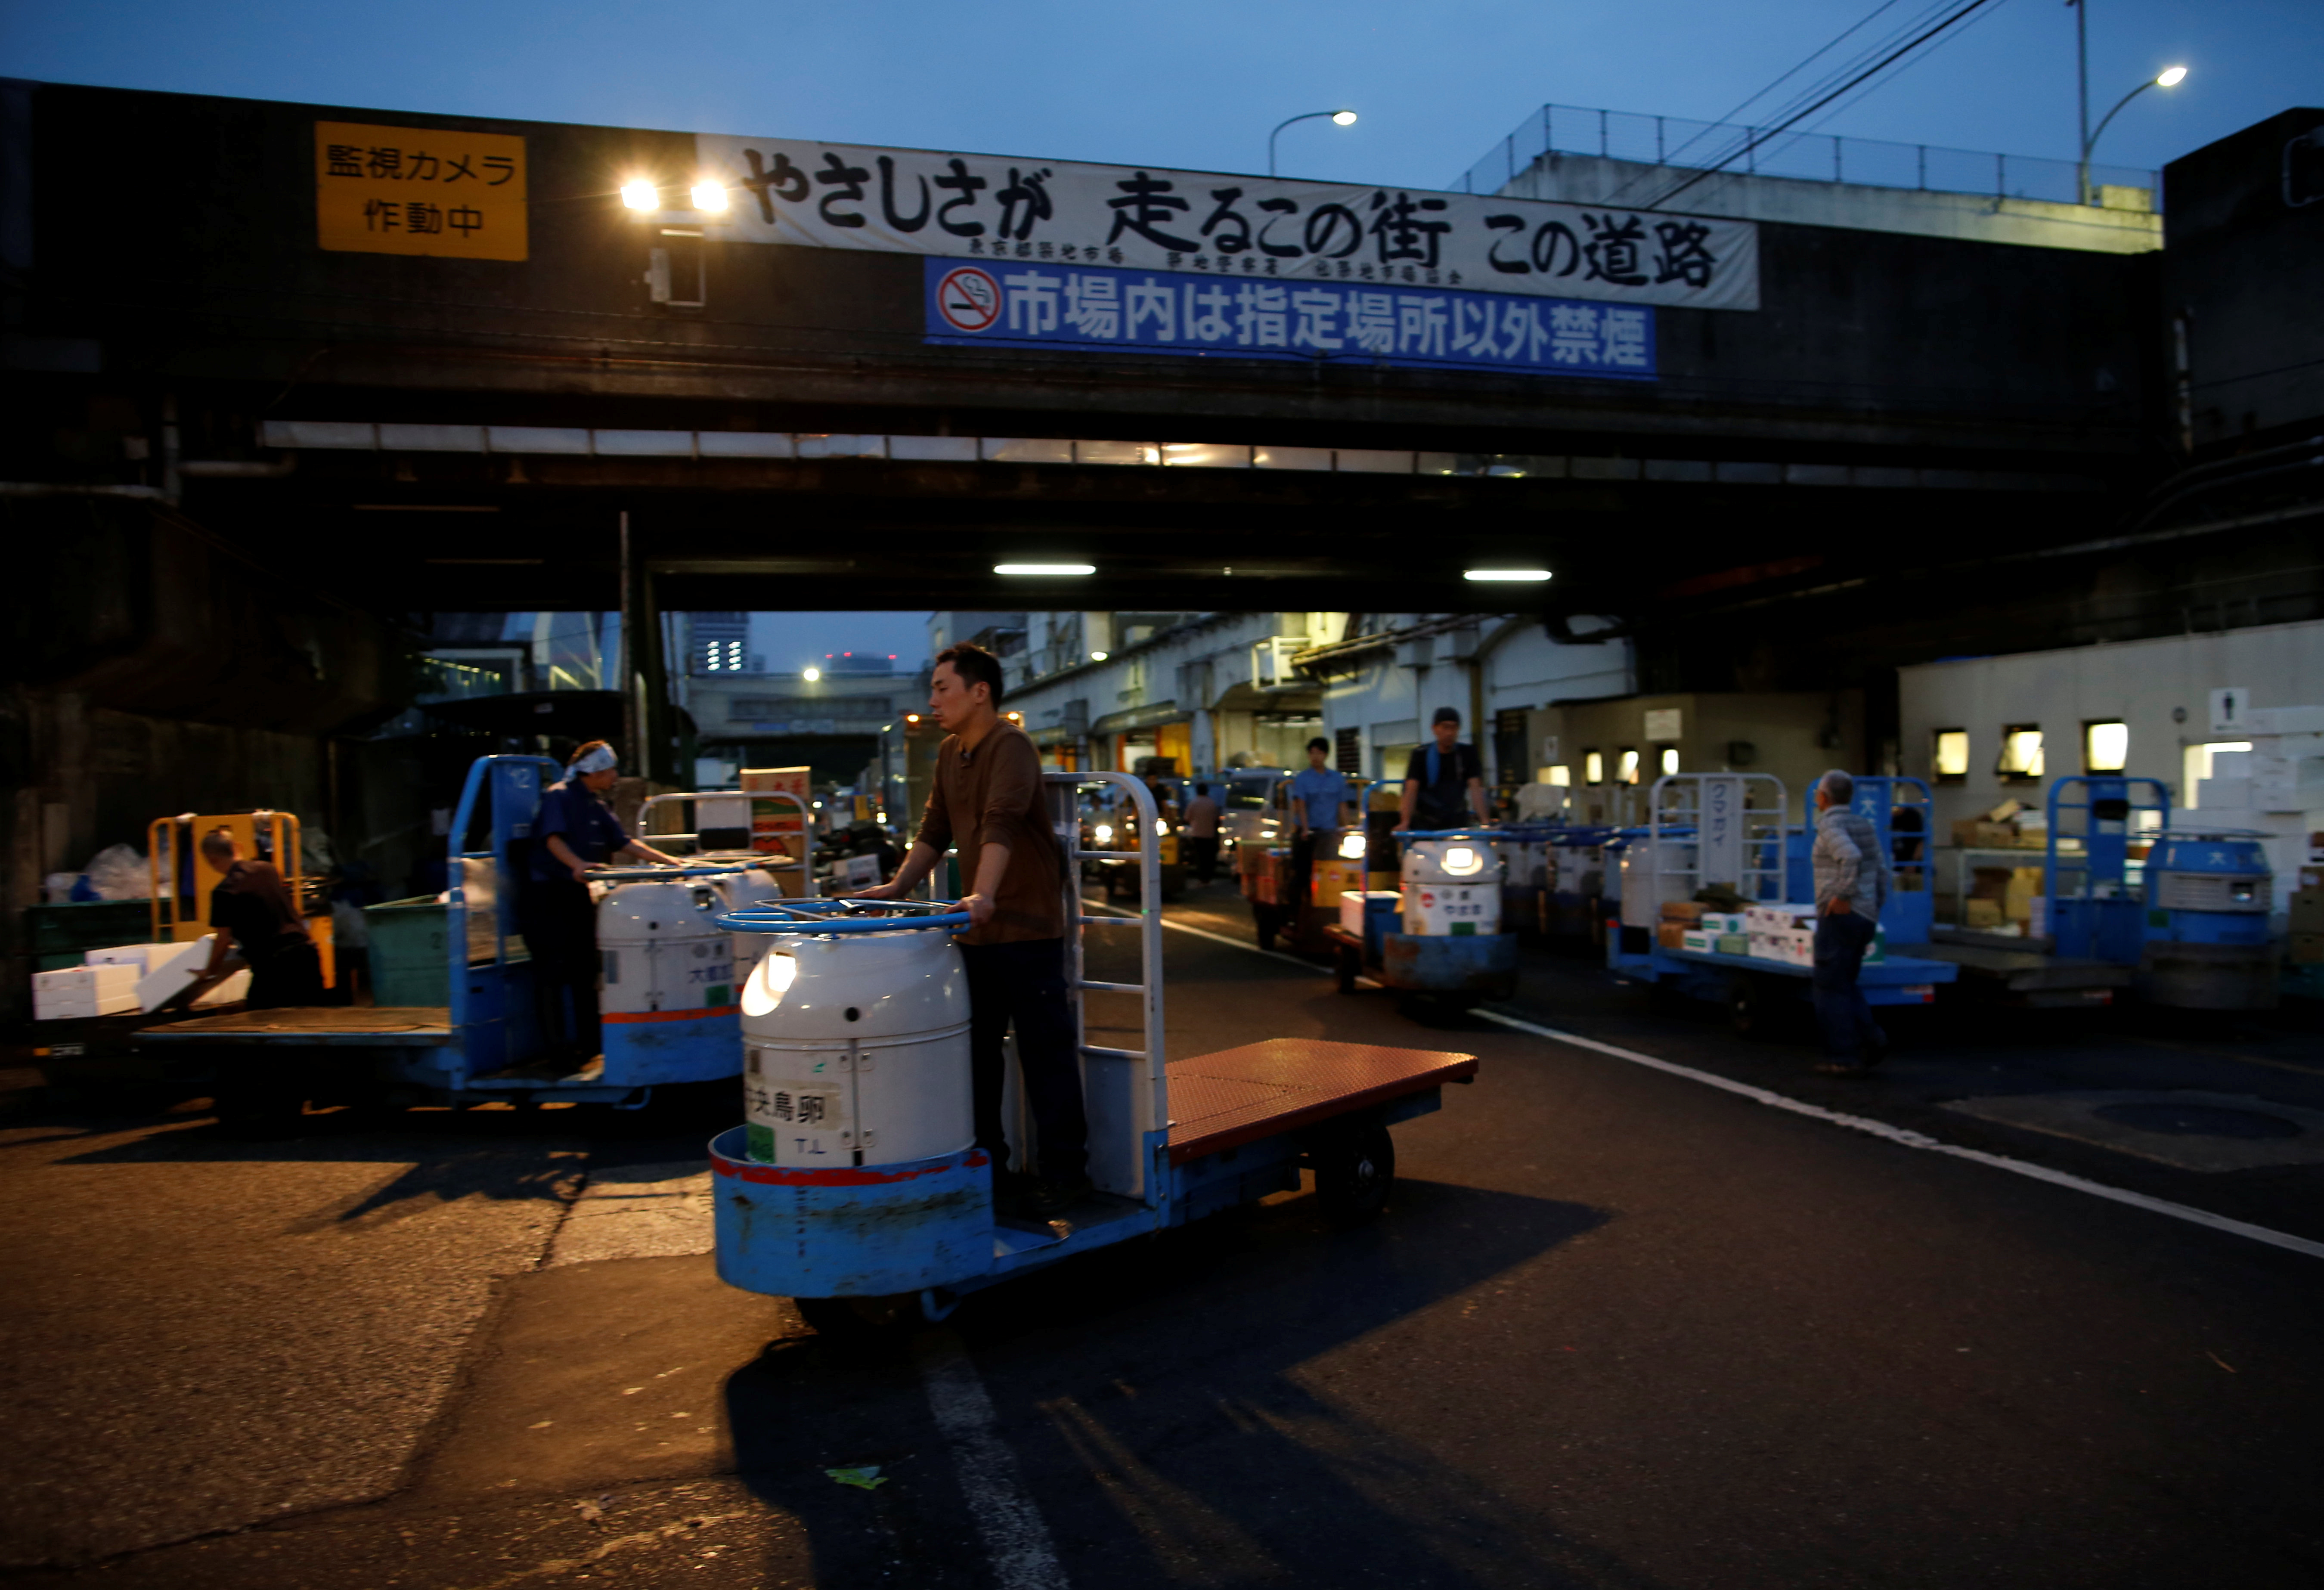 Workers drive vehicles known as turret trucks at the Tsukiji fish market in Tokyo, Japan, Sept. 25, 2018.